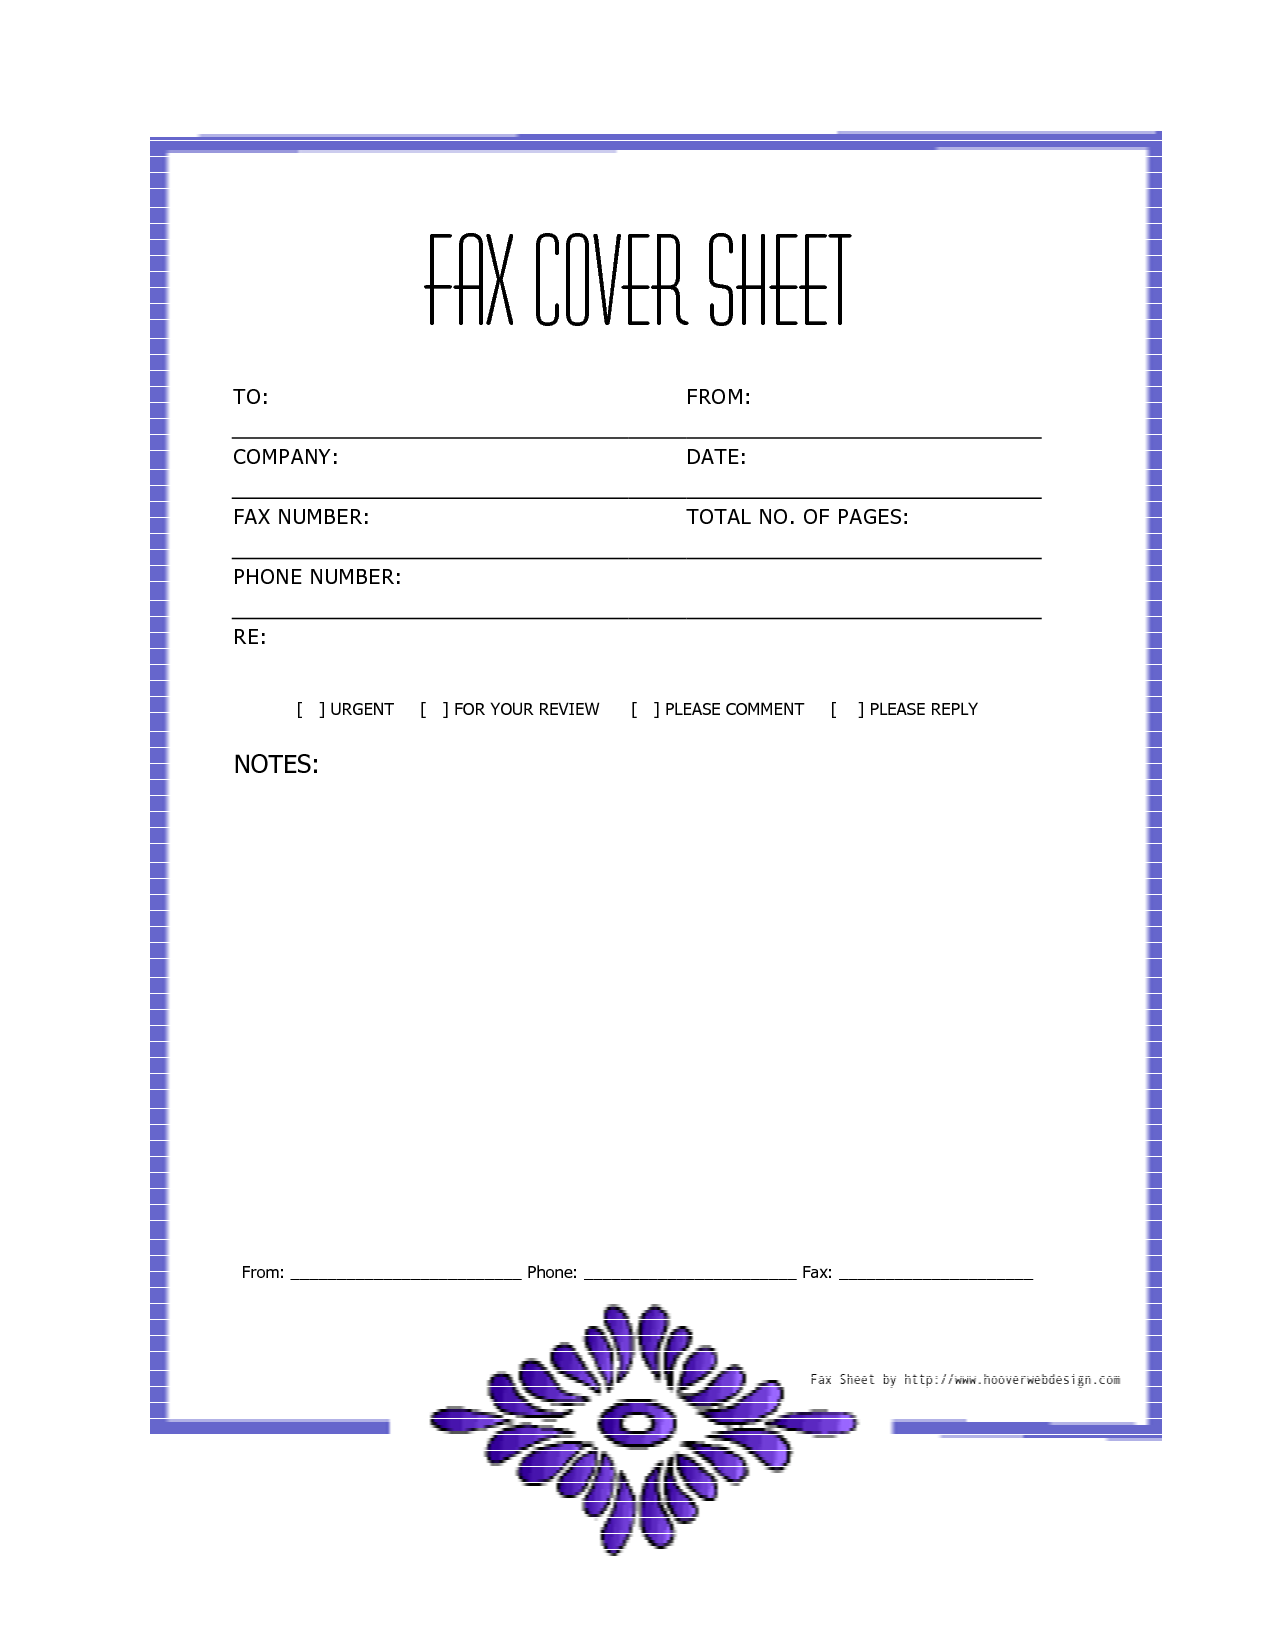 Free Downloads Fax Covers Sheets | Free Printable Fax Cover Sheet Template  Elegant   Download As  Fax Cover Sheet To Print